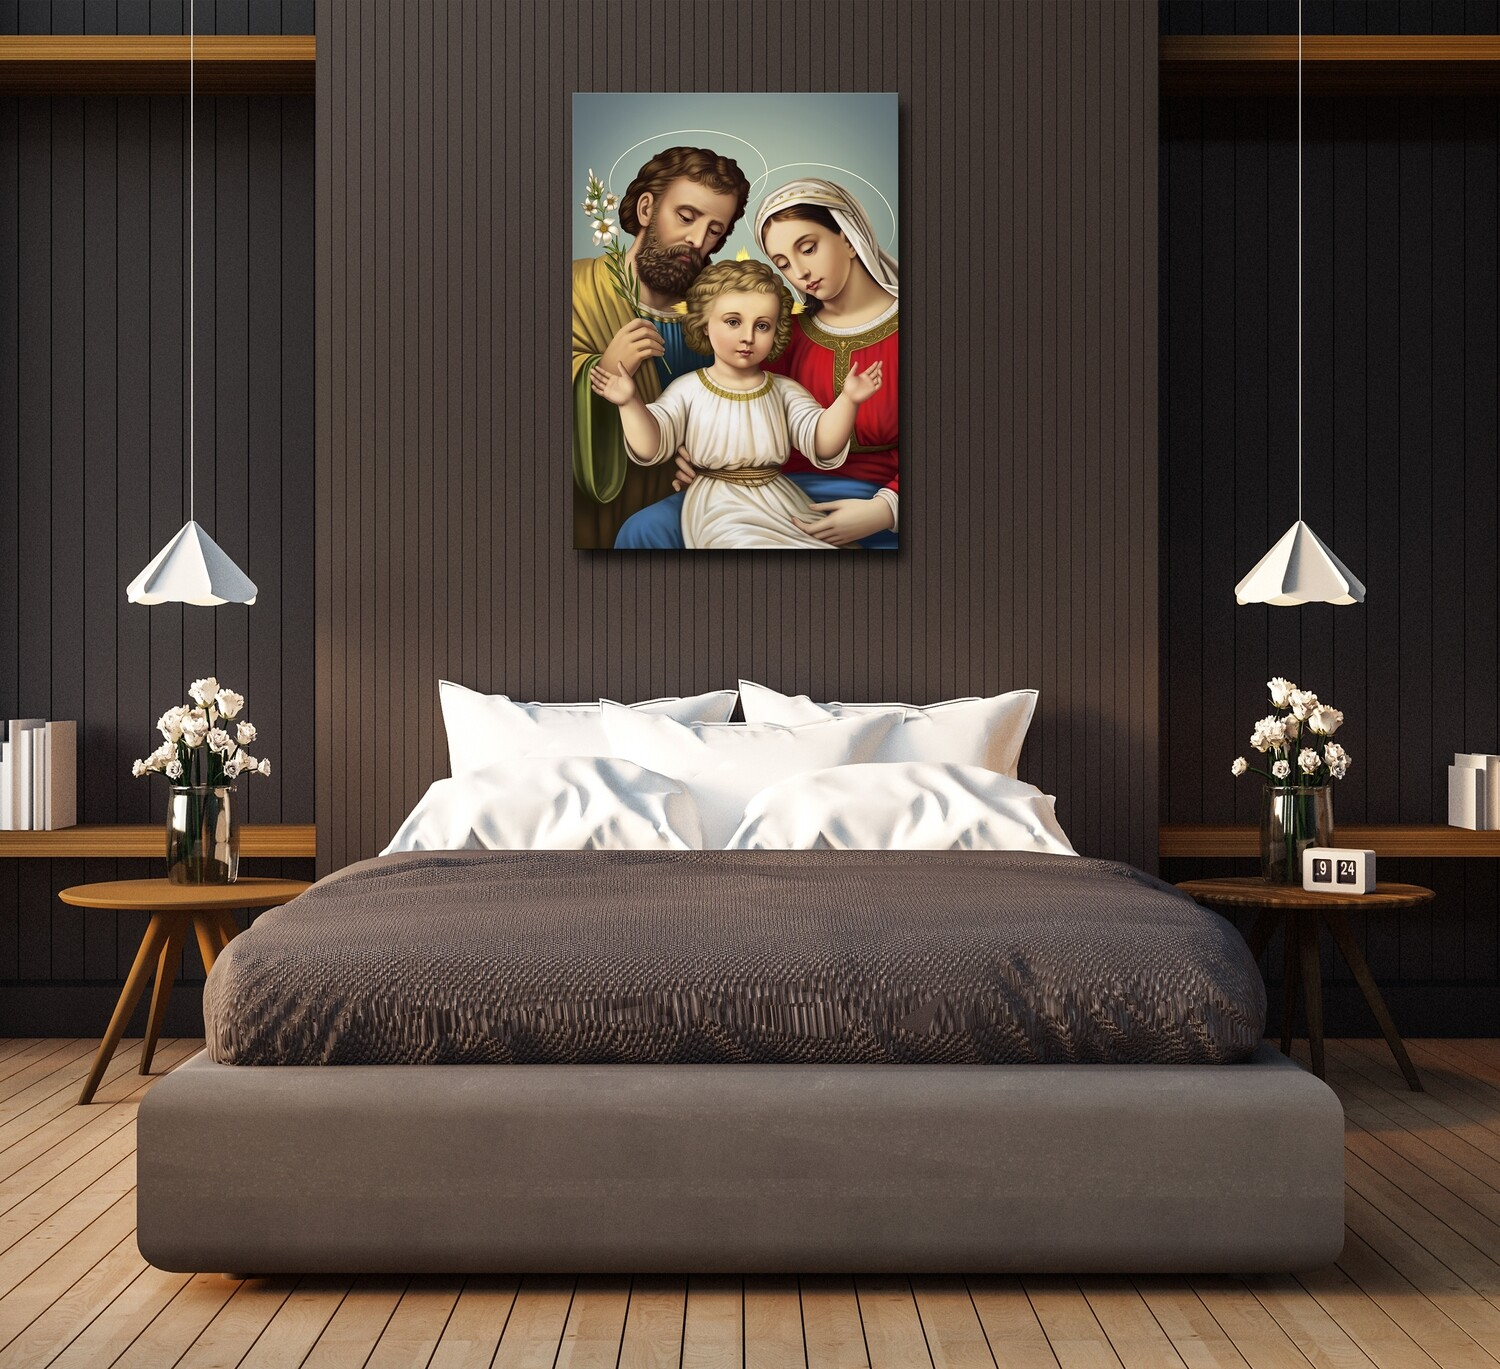 Holy Family Painting |Frameless Christian Wallart |Joseph Mary Jesus Picture Printed on Acrylic Glass |Aluminium Float Framed and Ready To Hang